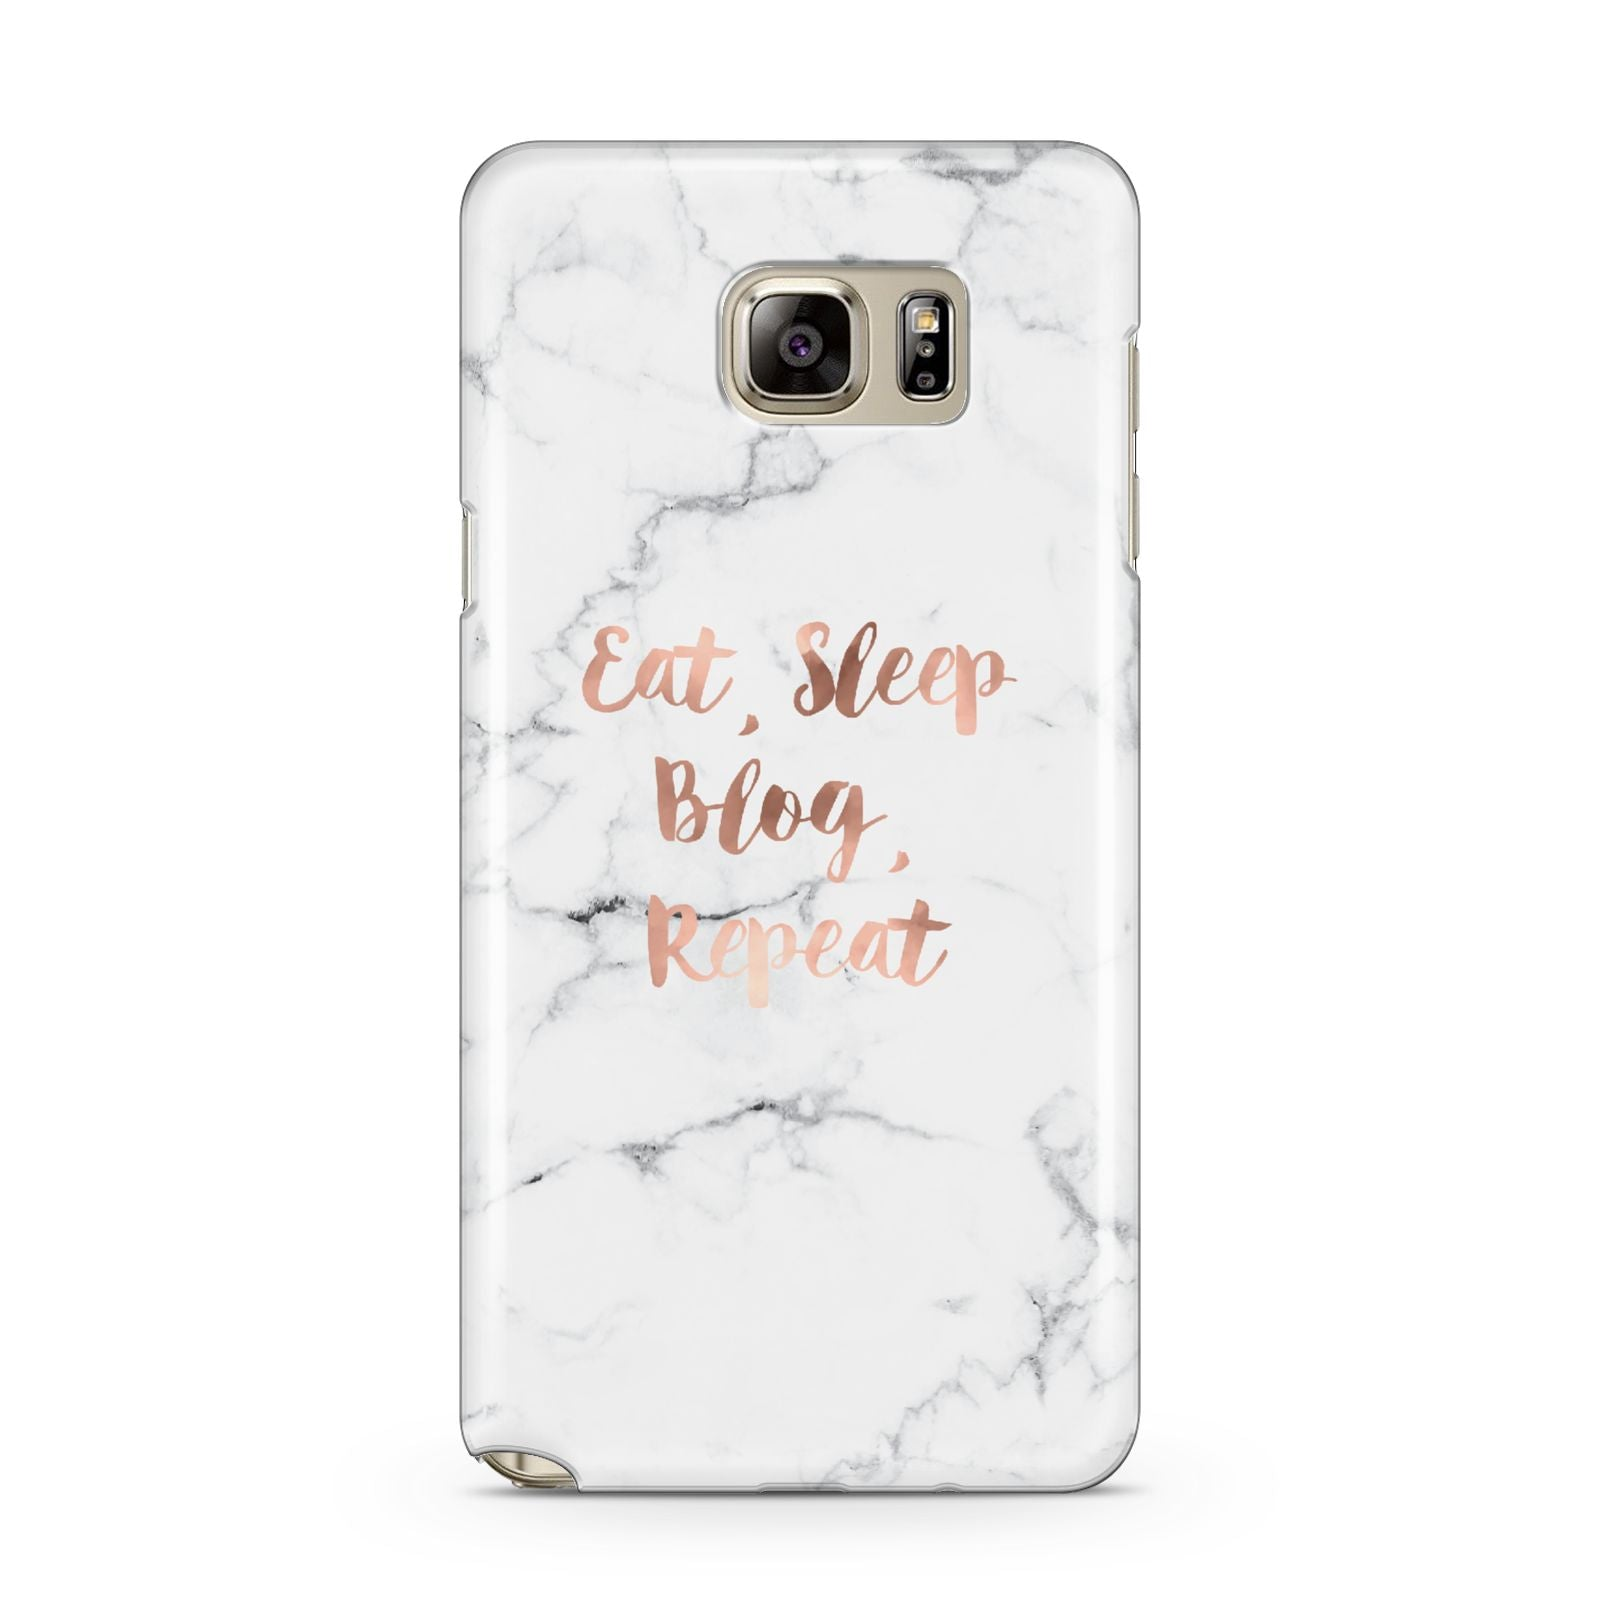 Eat Sleep Blog Repeat Marble Effect Samsung Galaxy Note 5 Case